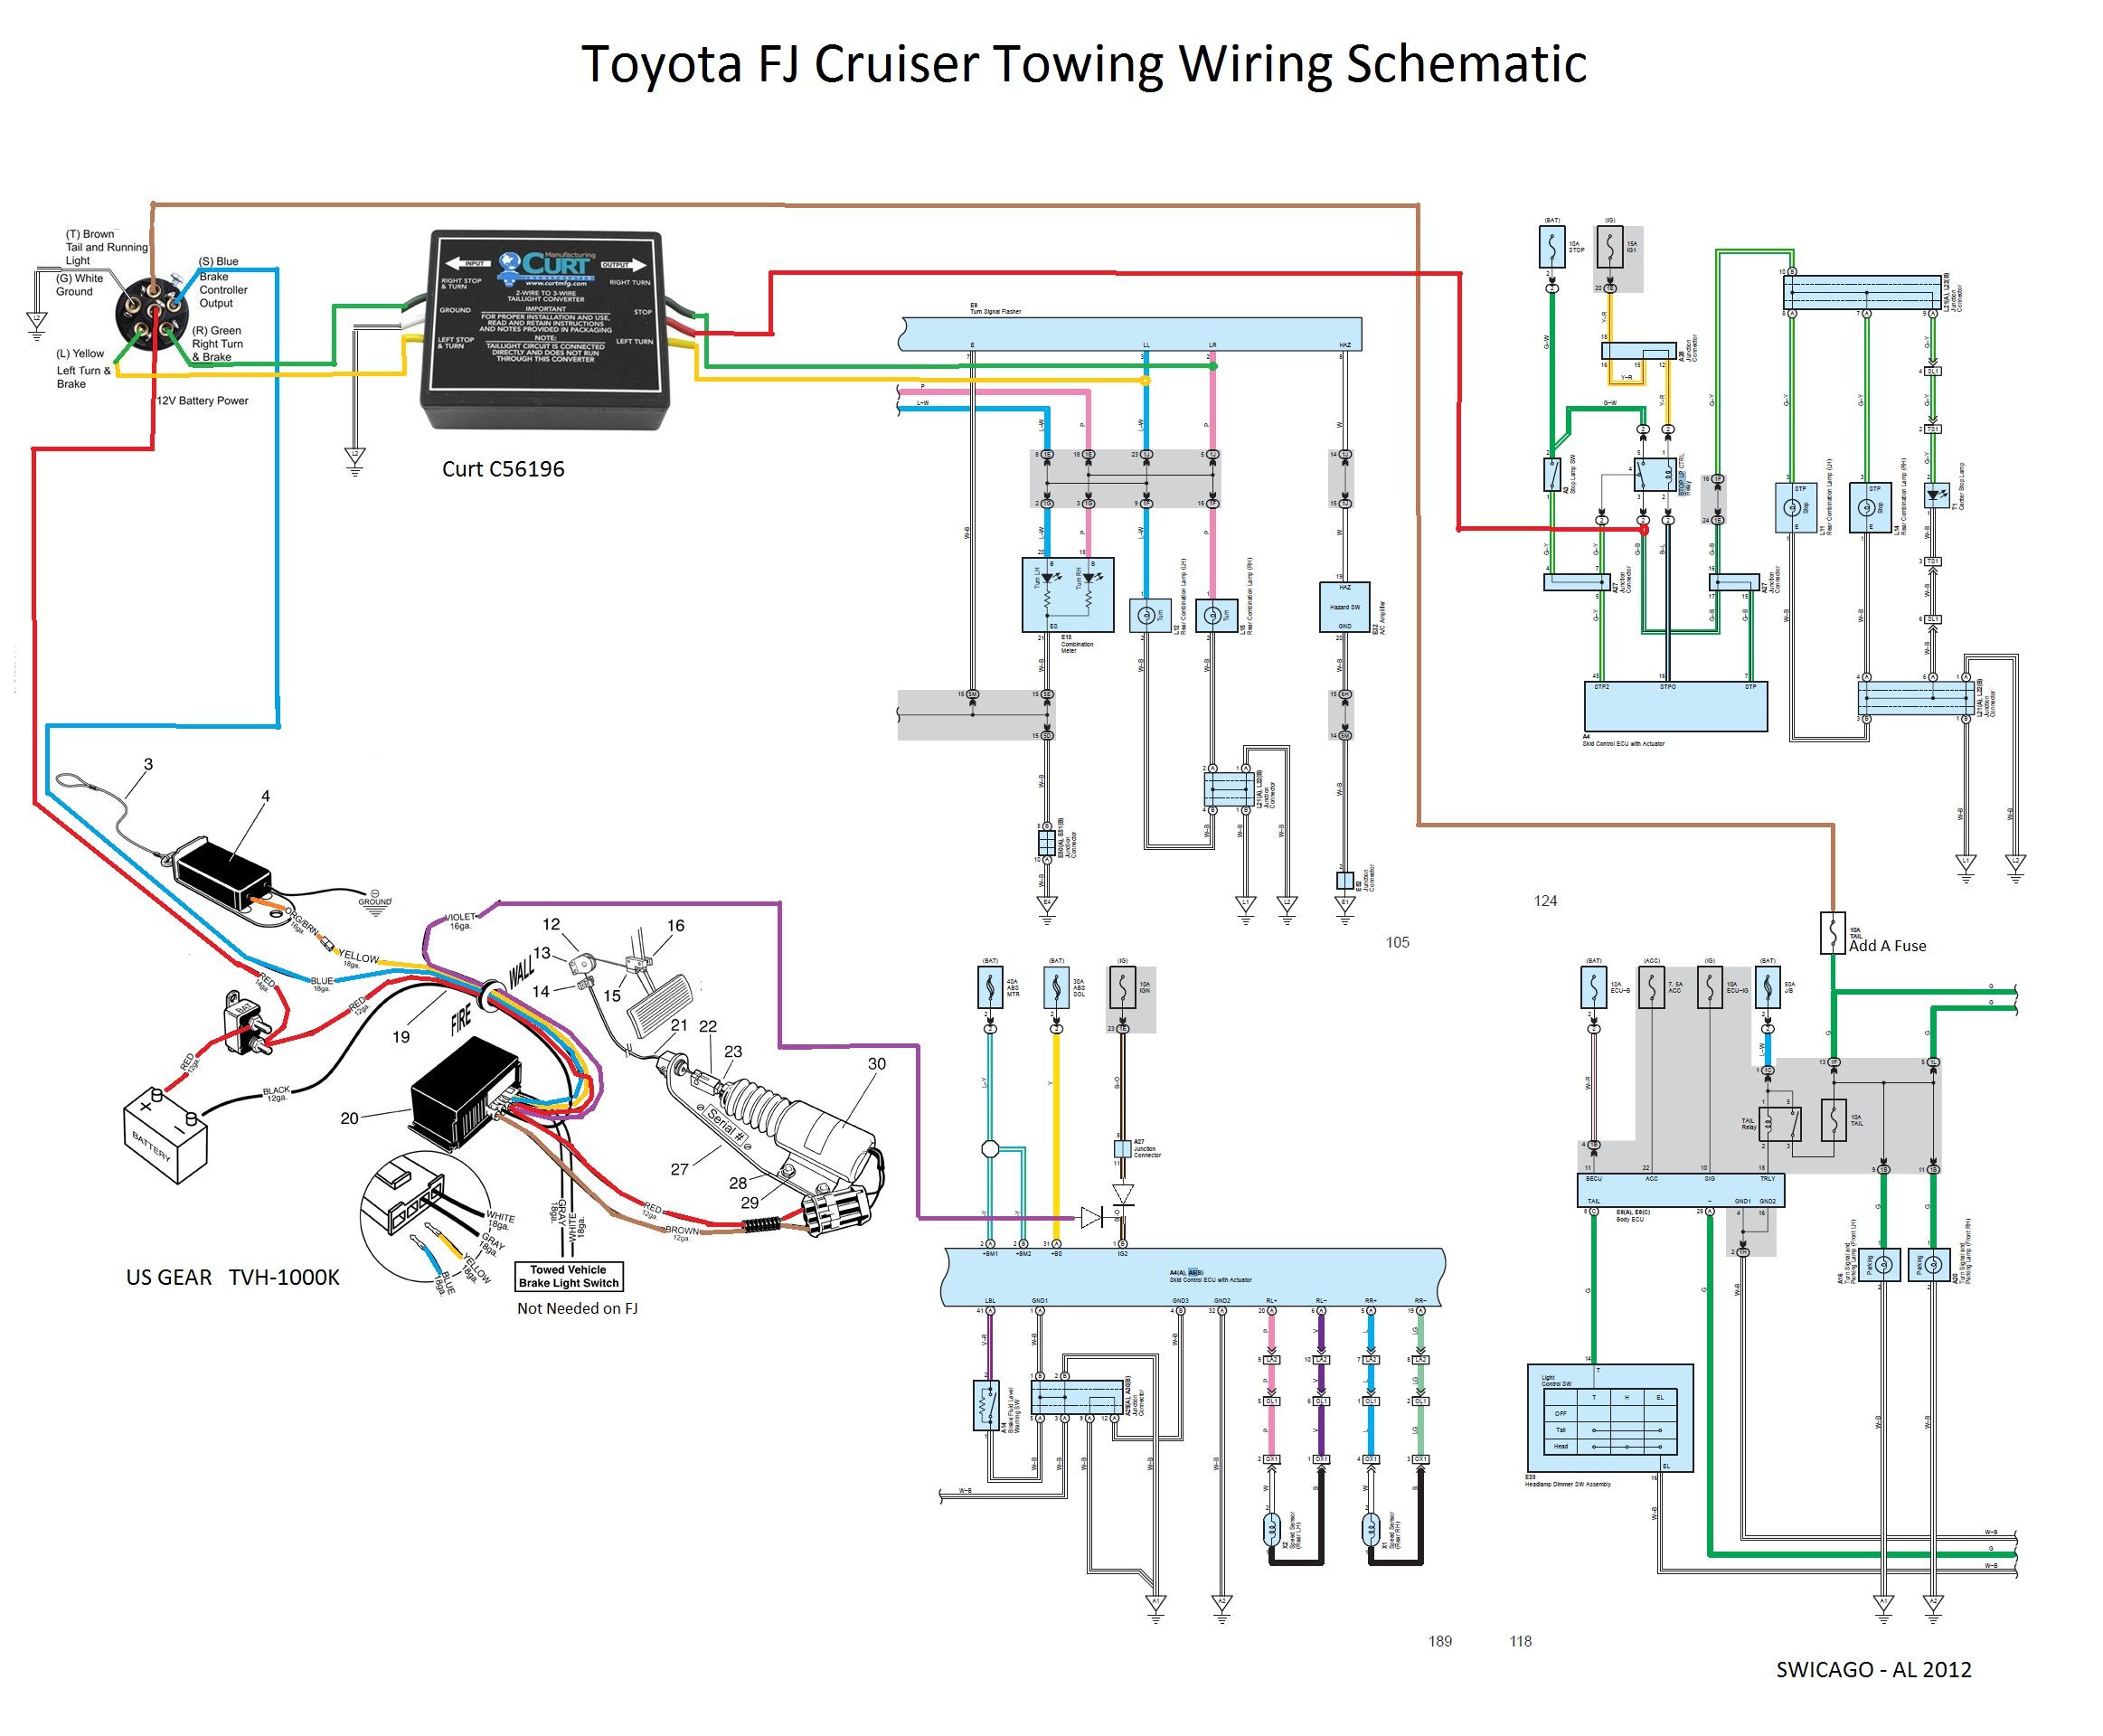 Fj Cruiser Factory Wiring Diagram Content Resource Of Wiring Diagram \u2022  2007 Cadillac SRX Trailer Wiring 2007 Toyota Fj Cruiser Trailer Wiring